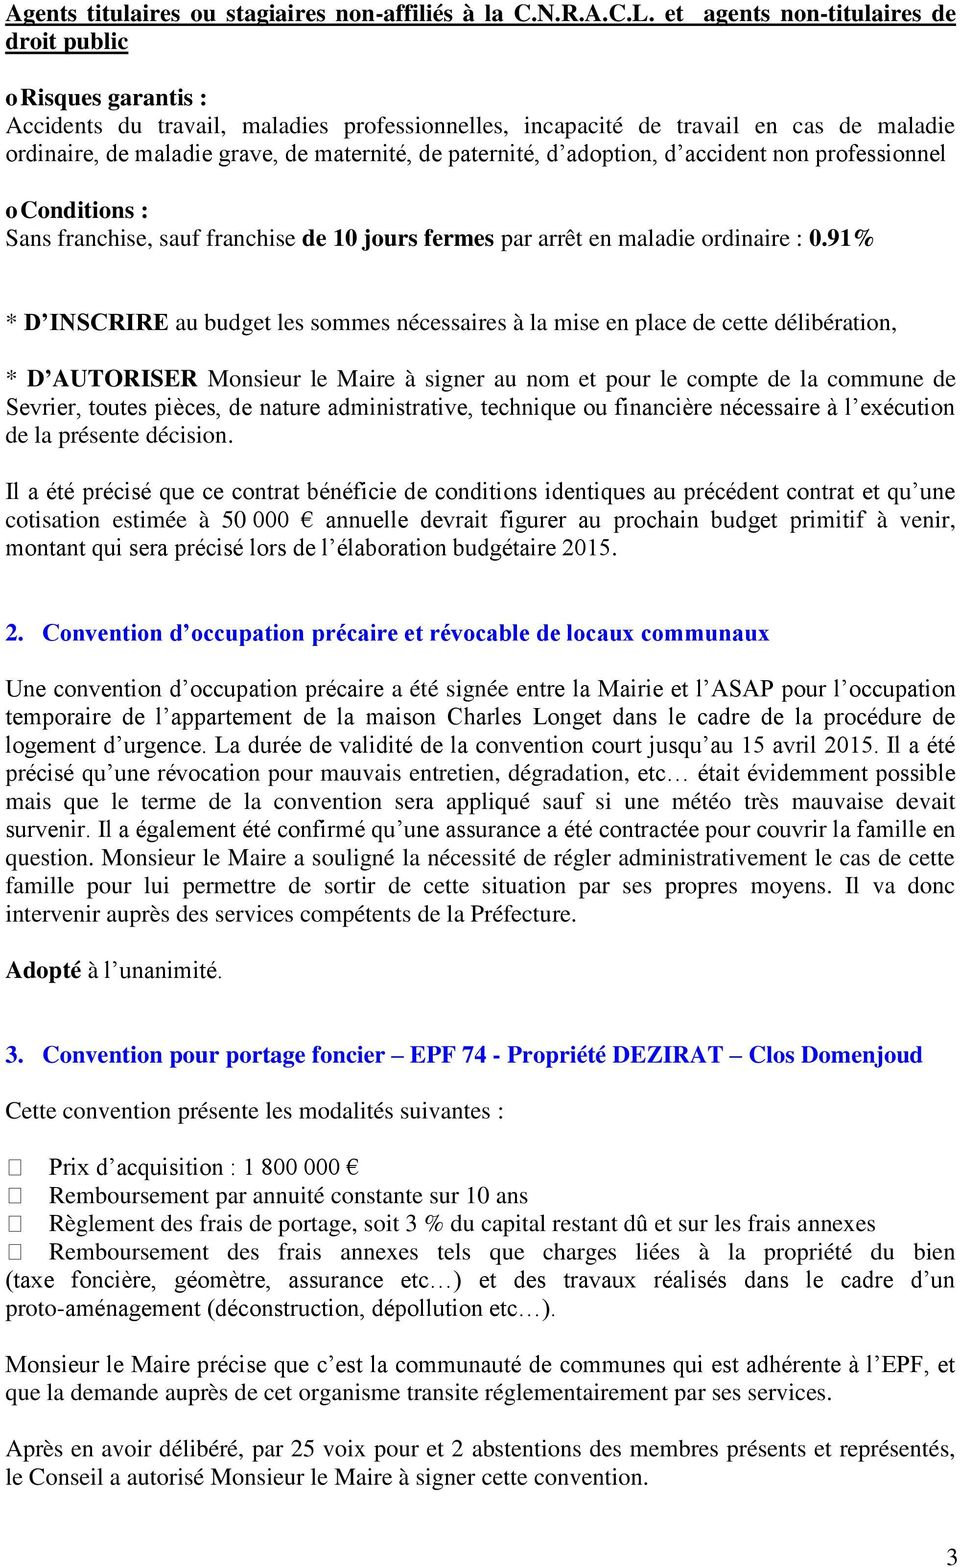 paternité, d adoption, d accident non professionnel o Conditions : Sans franchise, sauf franchise de 10 jours fermes par arrêt en maladie ordinaire : 0.